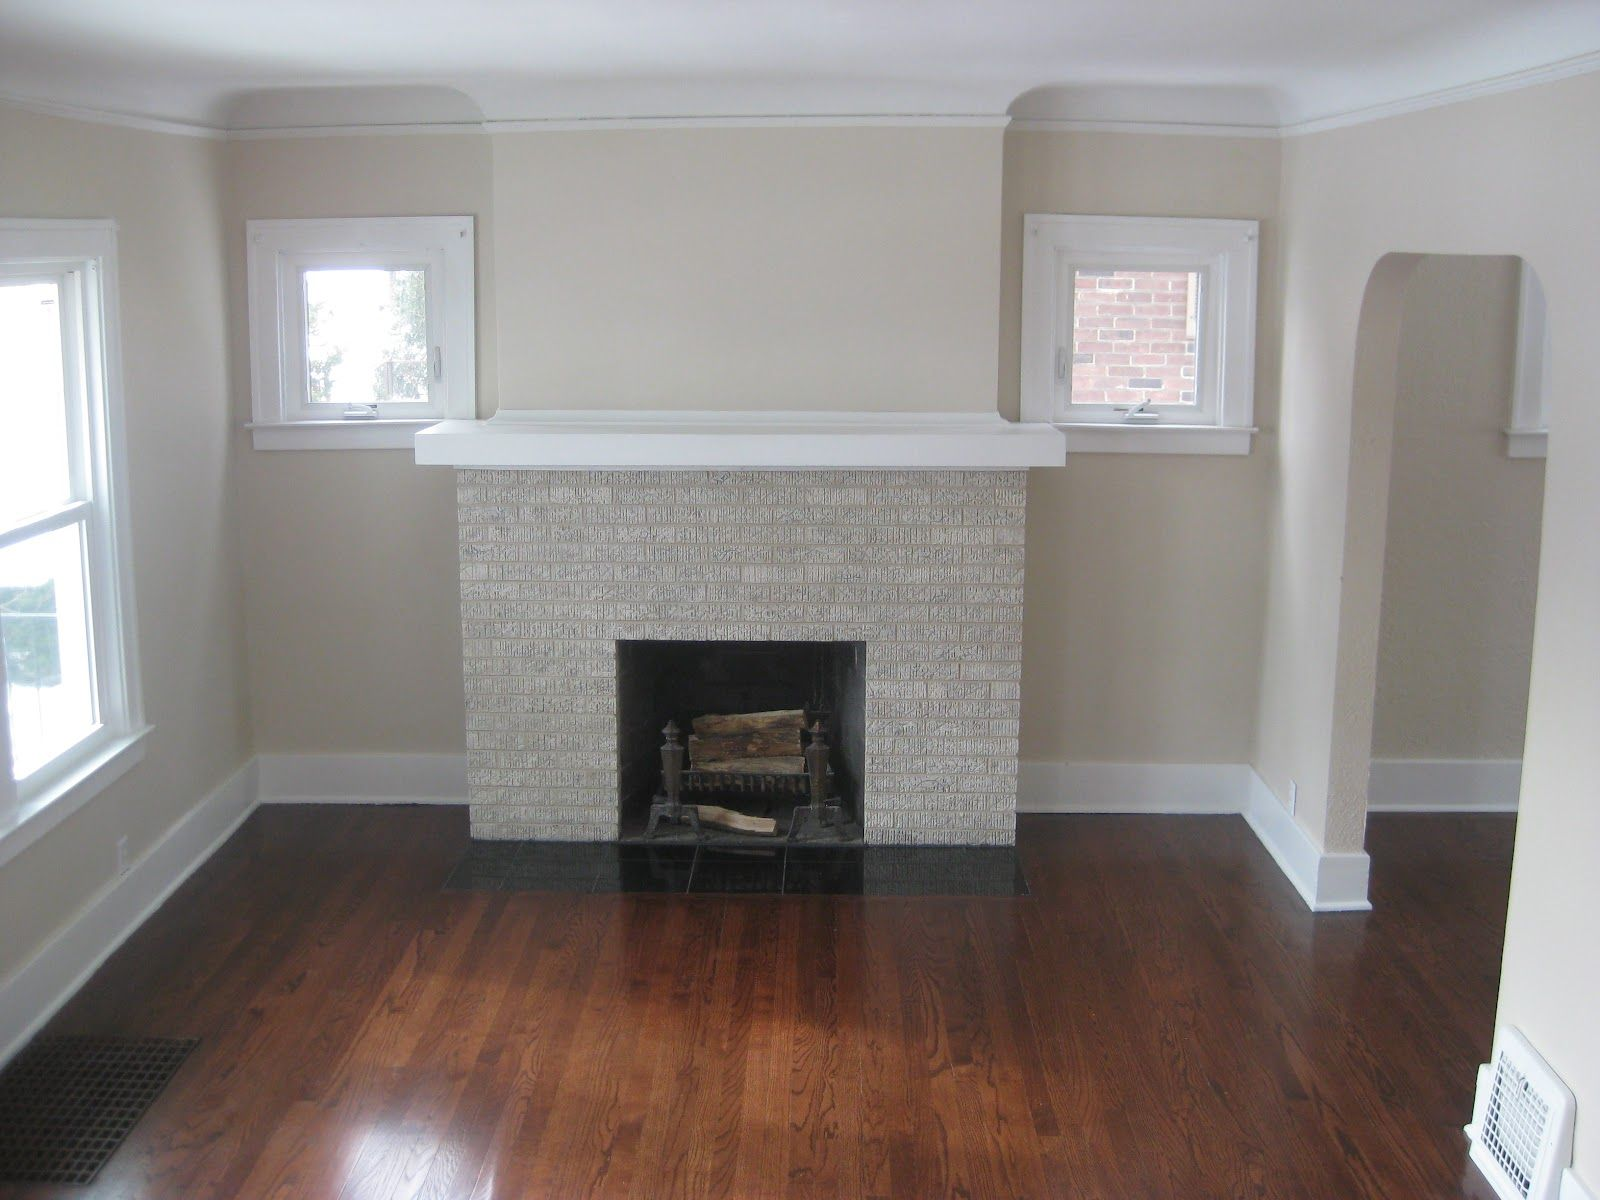 watch with paint the transform face front your n cleaner cleaning brick of peel fireplace